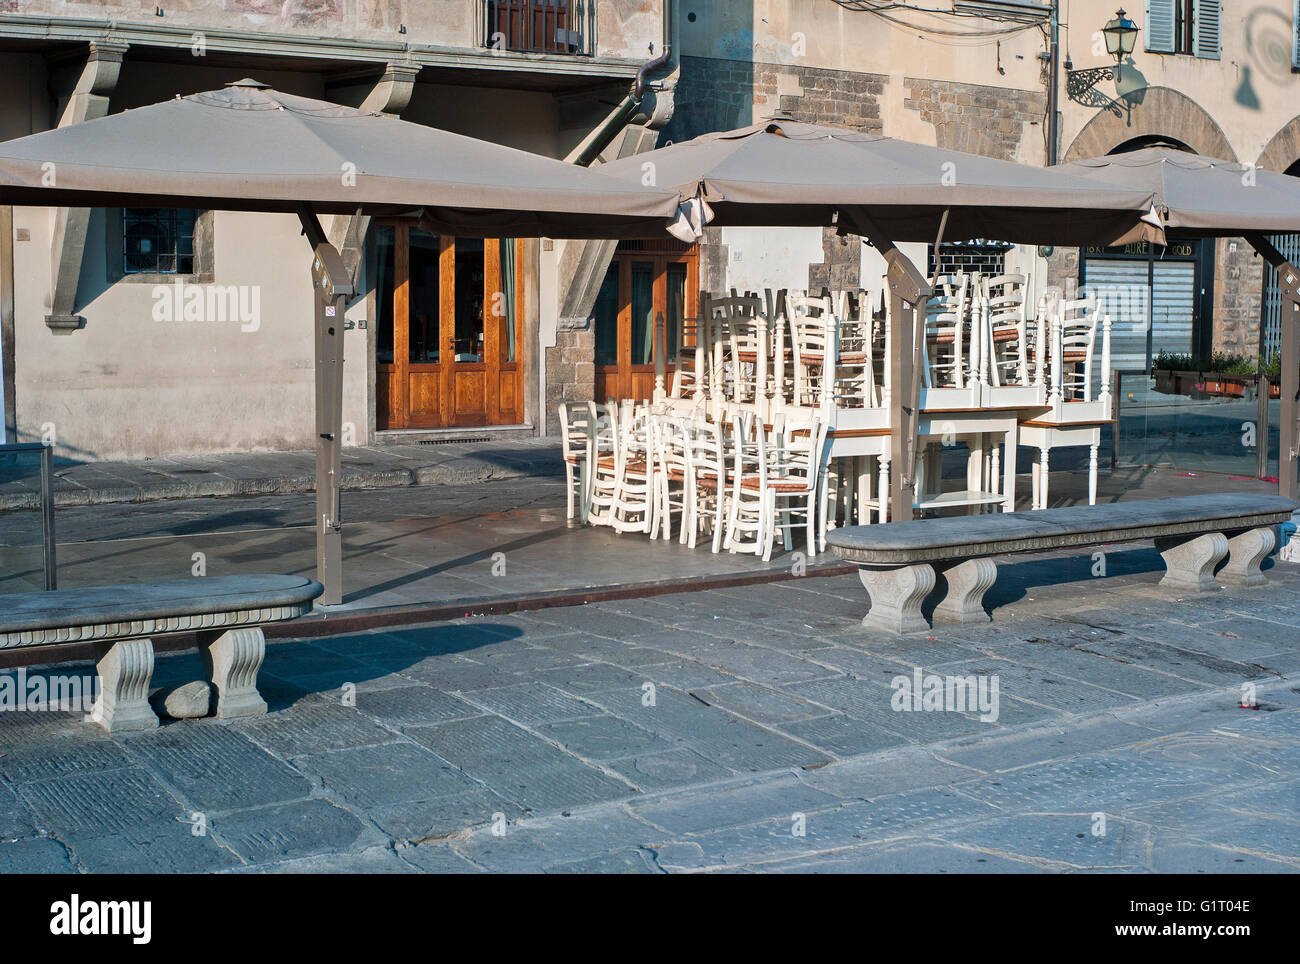 Restaurant Santa Et Tables Empilées Florence Croce Place Chaises En LqSpzjUVGM